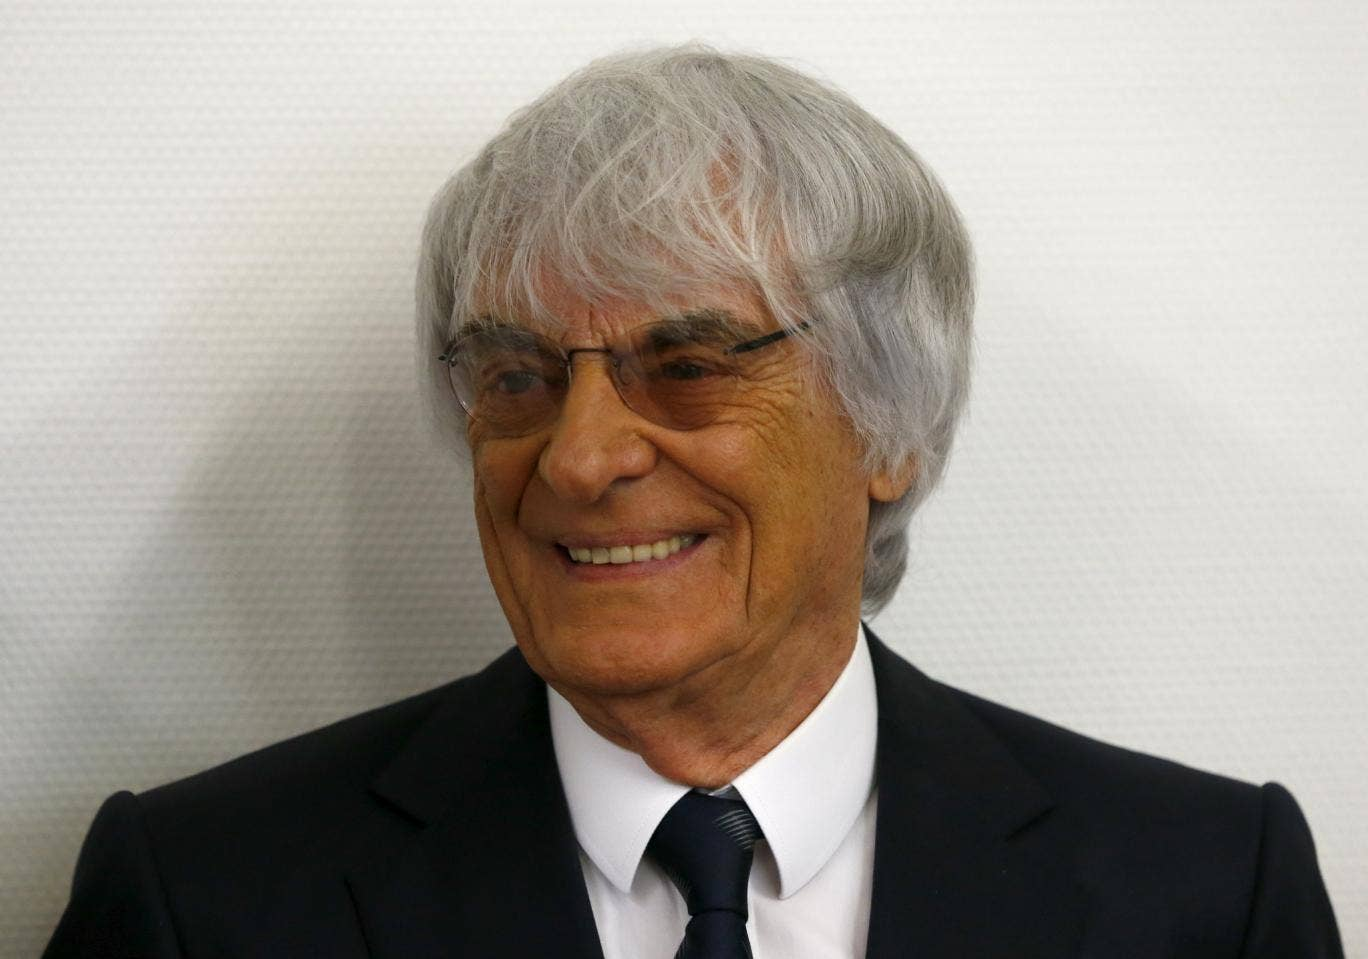 F1 boss Bernie Ecclestone has had his bribery case thrown out of court after making a one-off payment of $100m